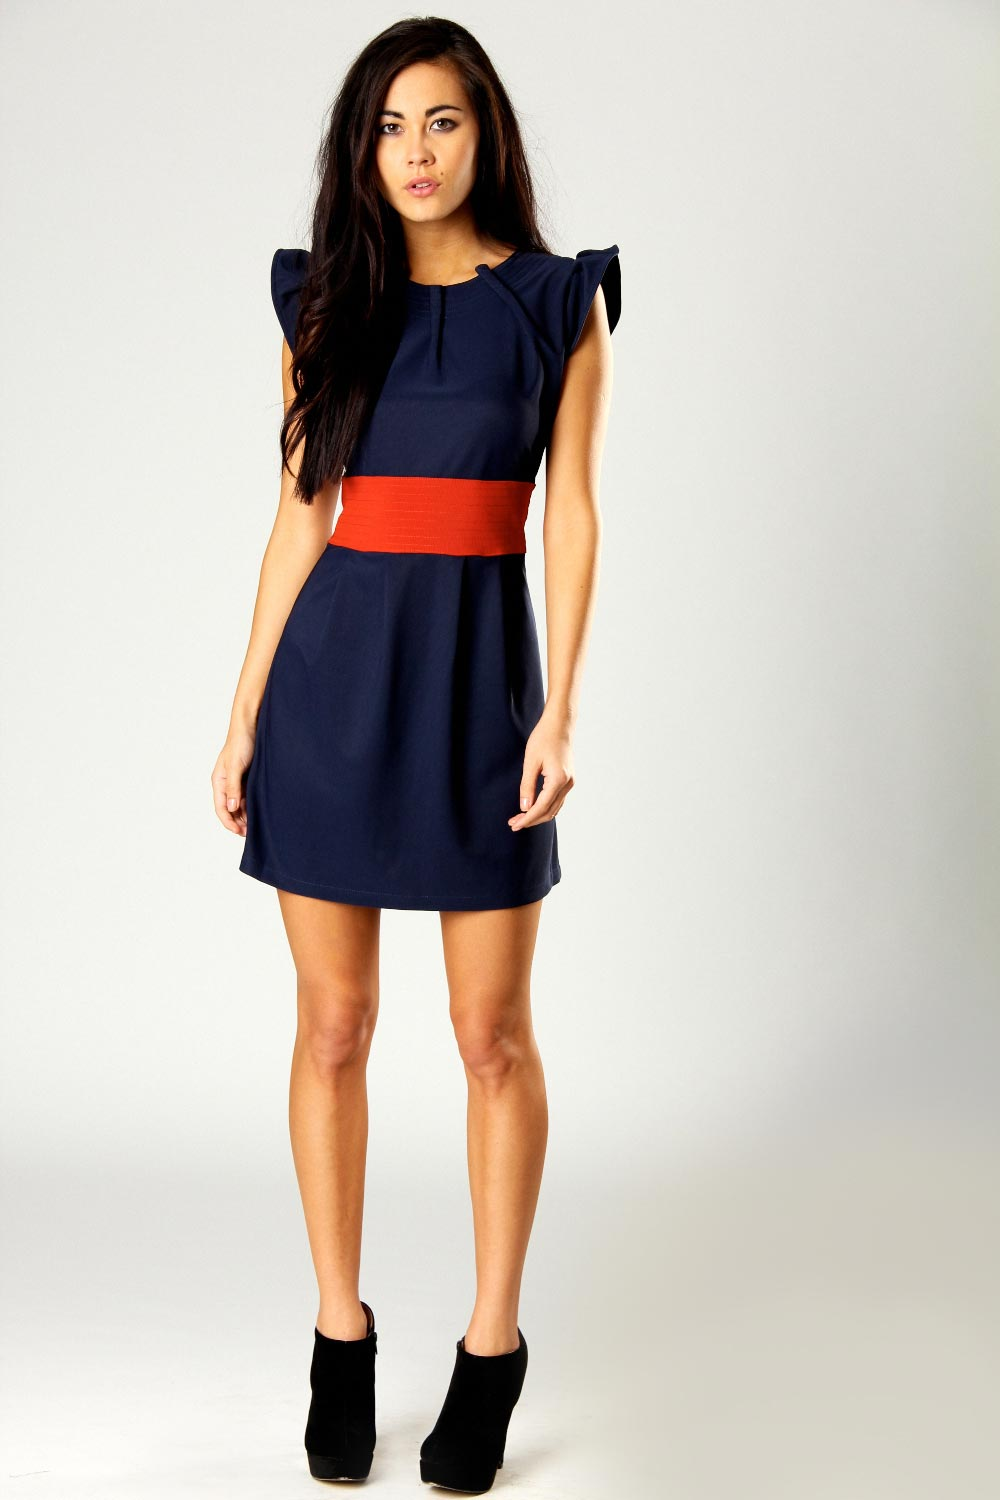 Boohoo-Renee-Shoulder-Detail-2-In1-Belted-Dress-BNWT